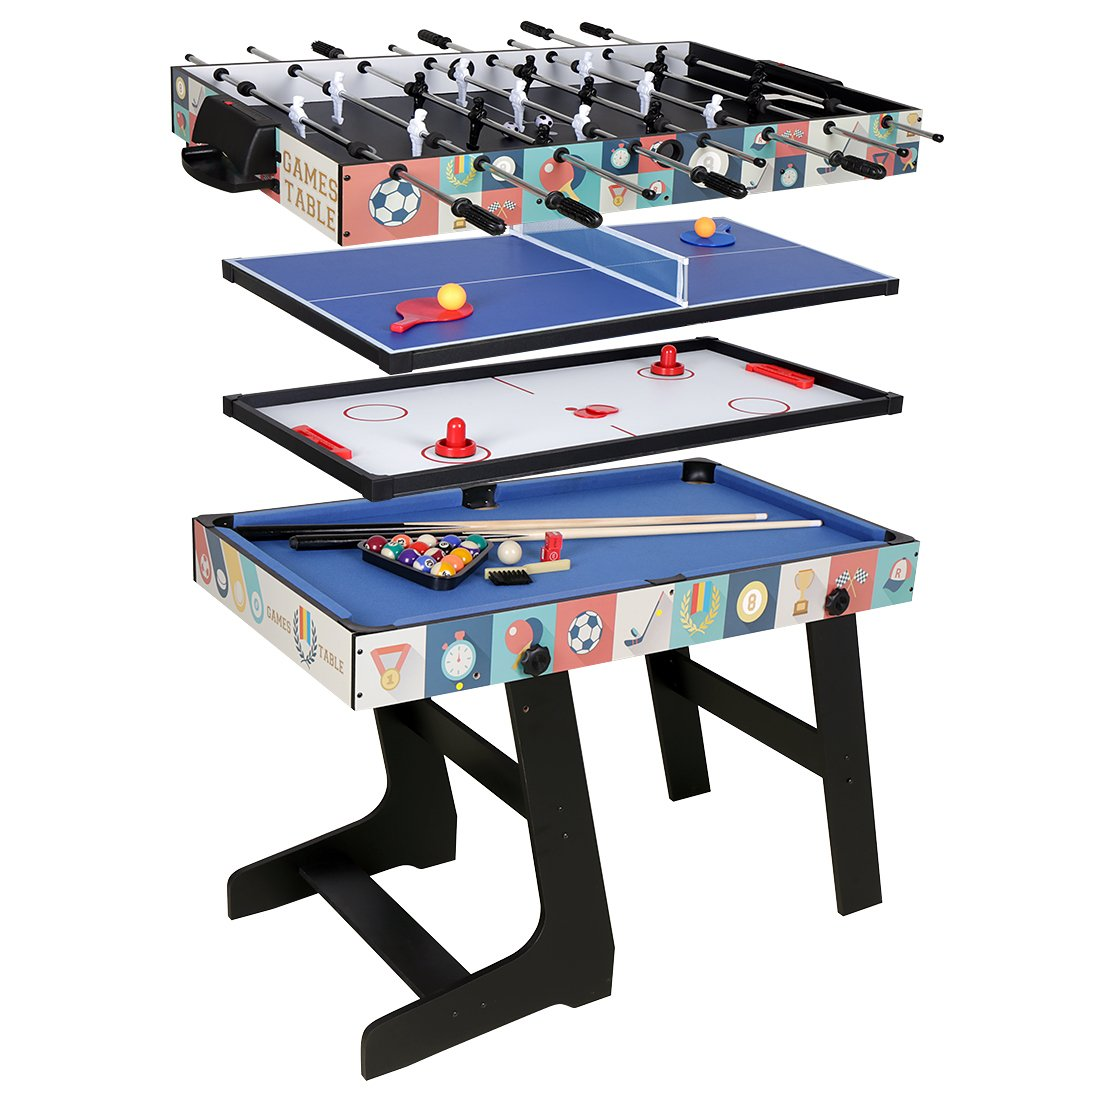 Hysport 4ft 4 in 1 Multi Game Table Combo Games Table, Foosball, Air Hockey, Billiard, Table Tennis by Hysport